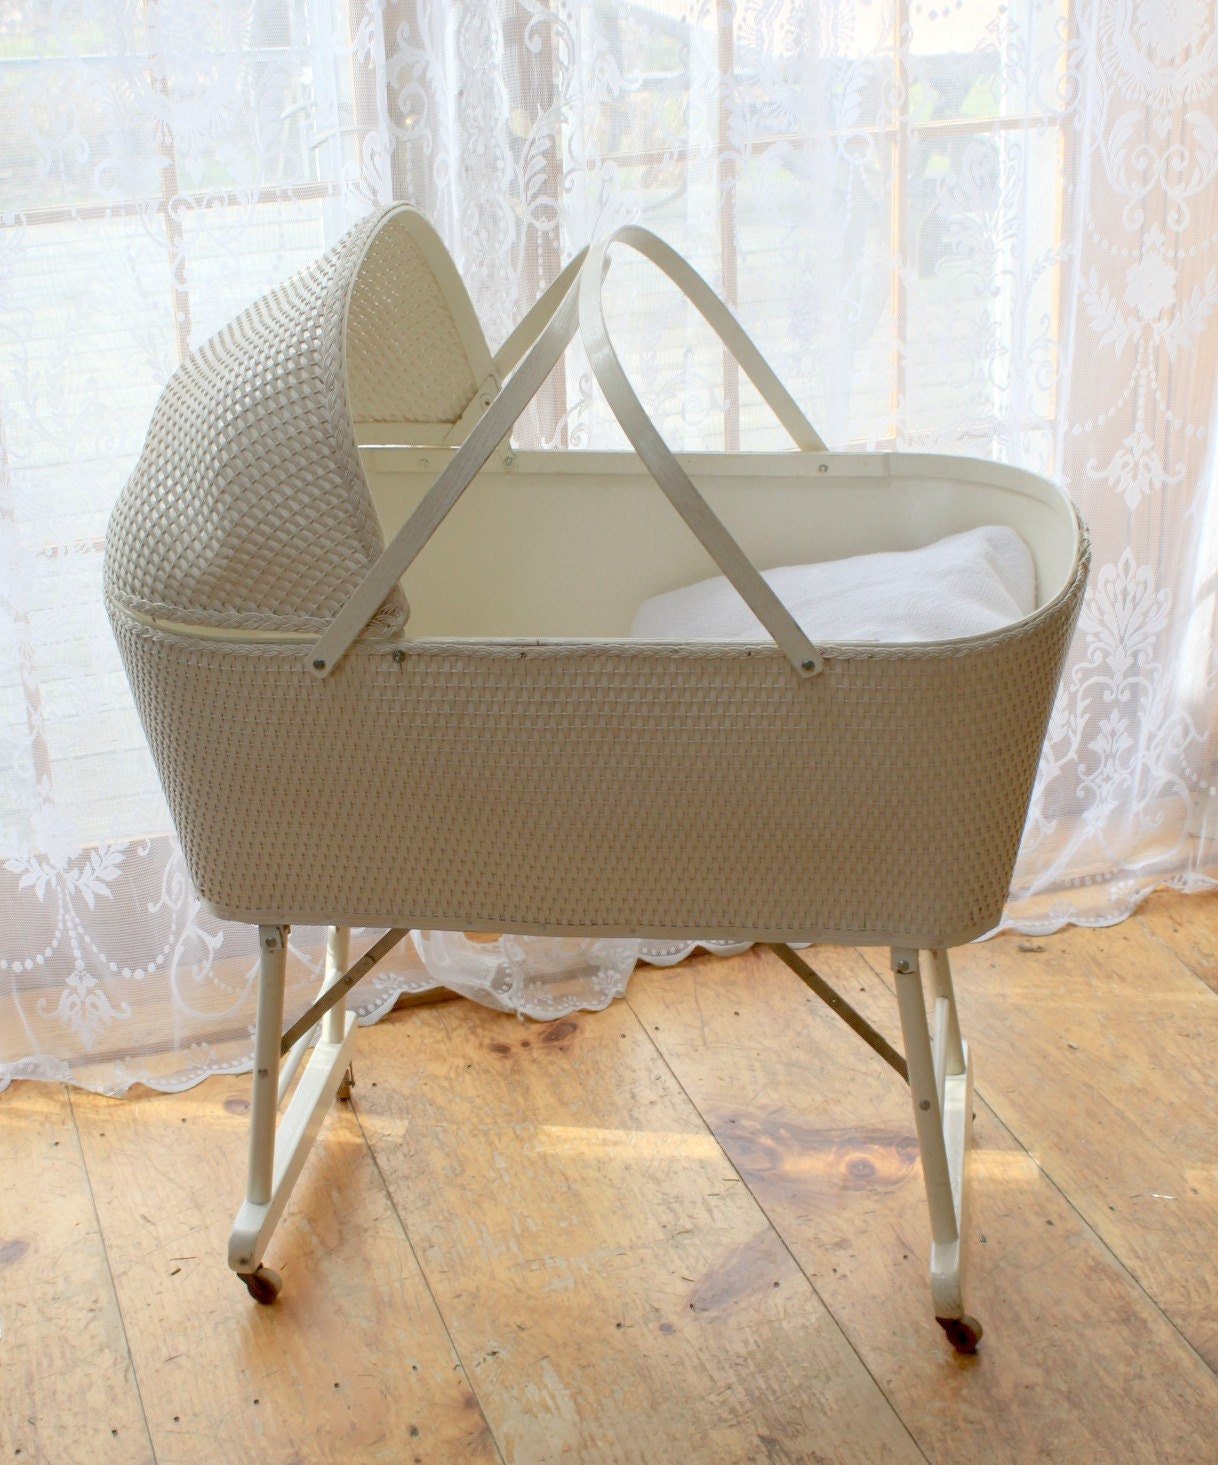 Vintage Wicker Baby Bassinet